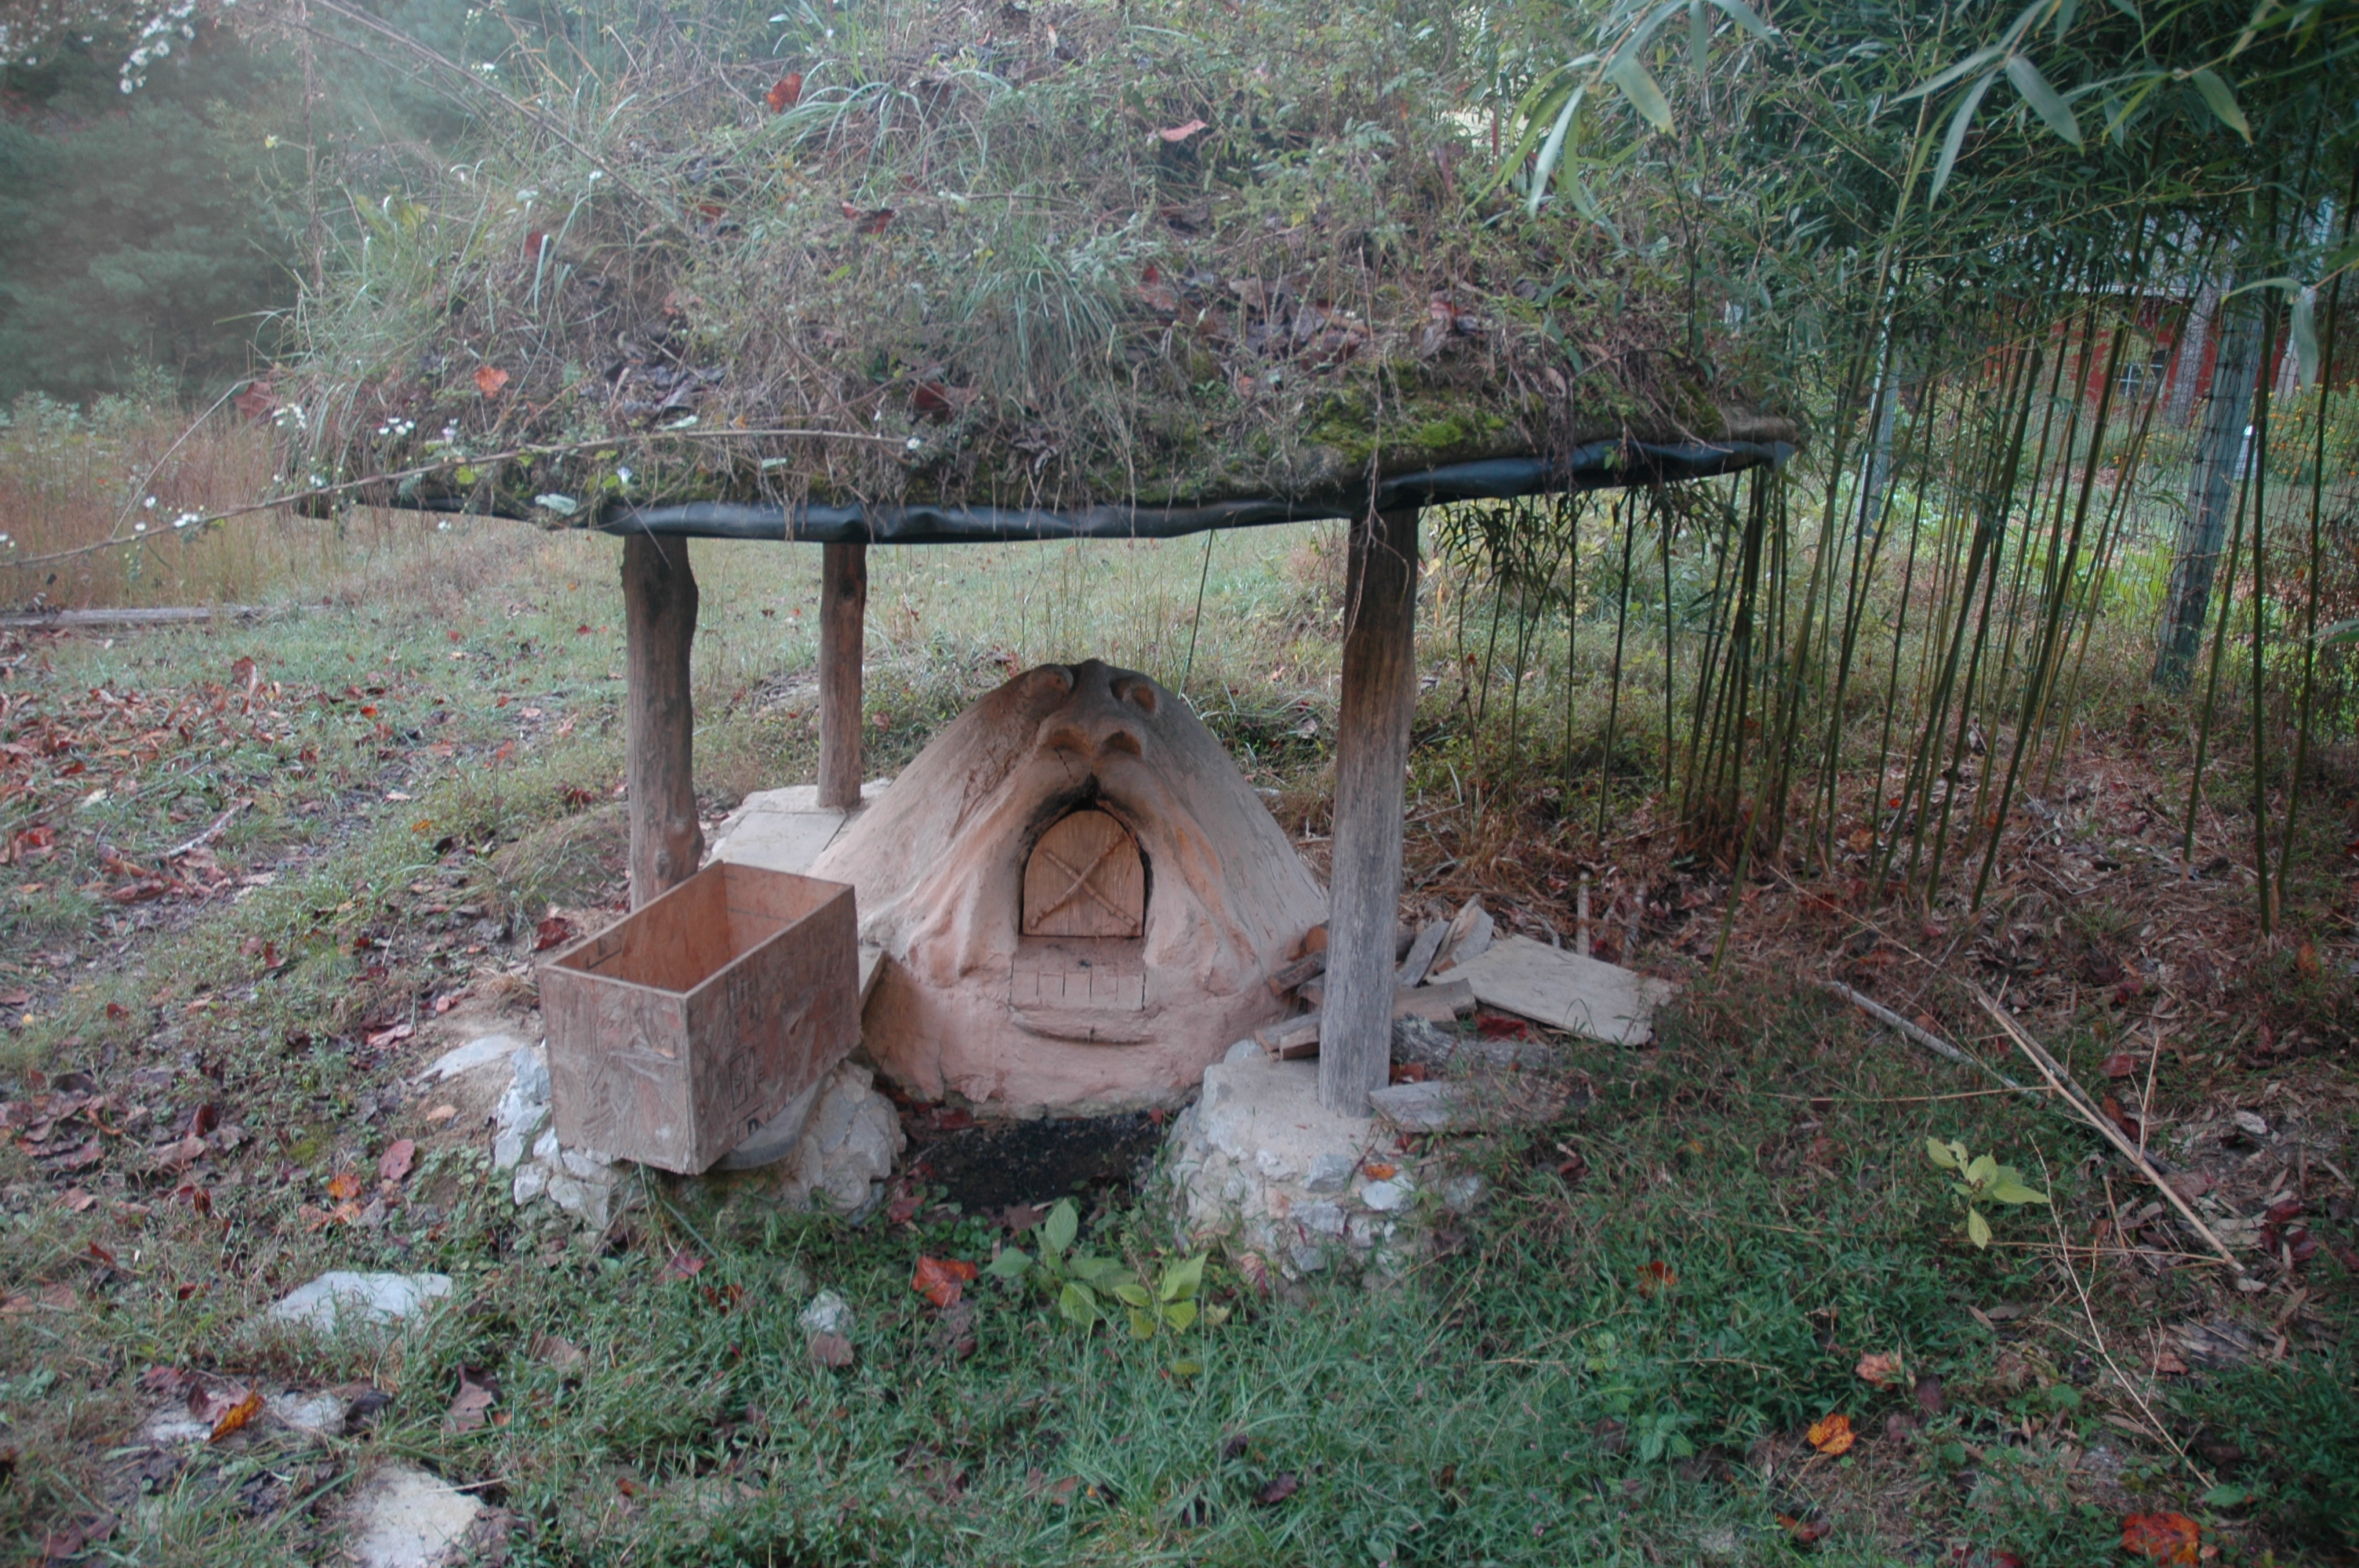 Cob Oven/Satellite Roof